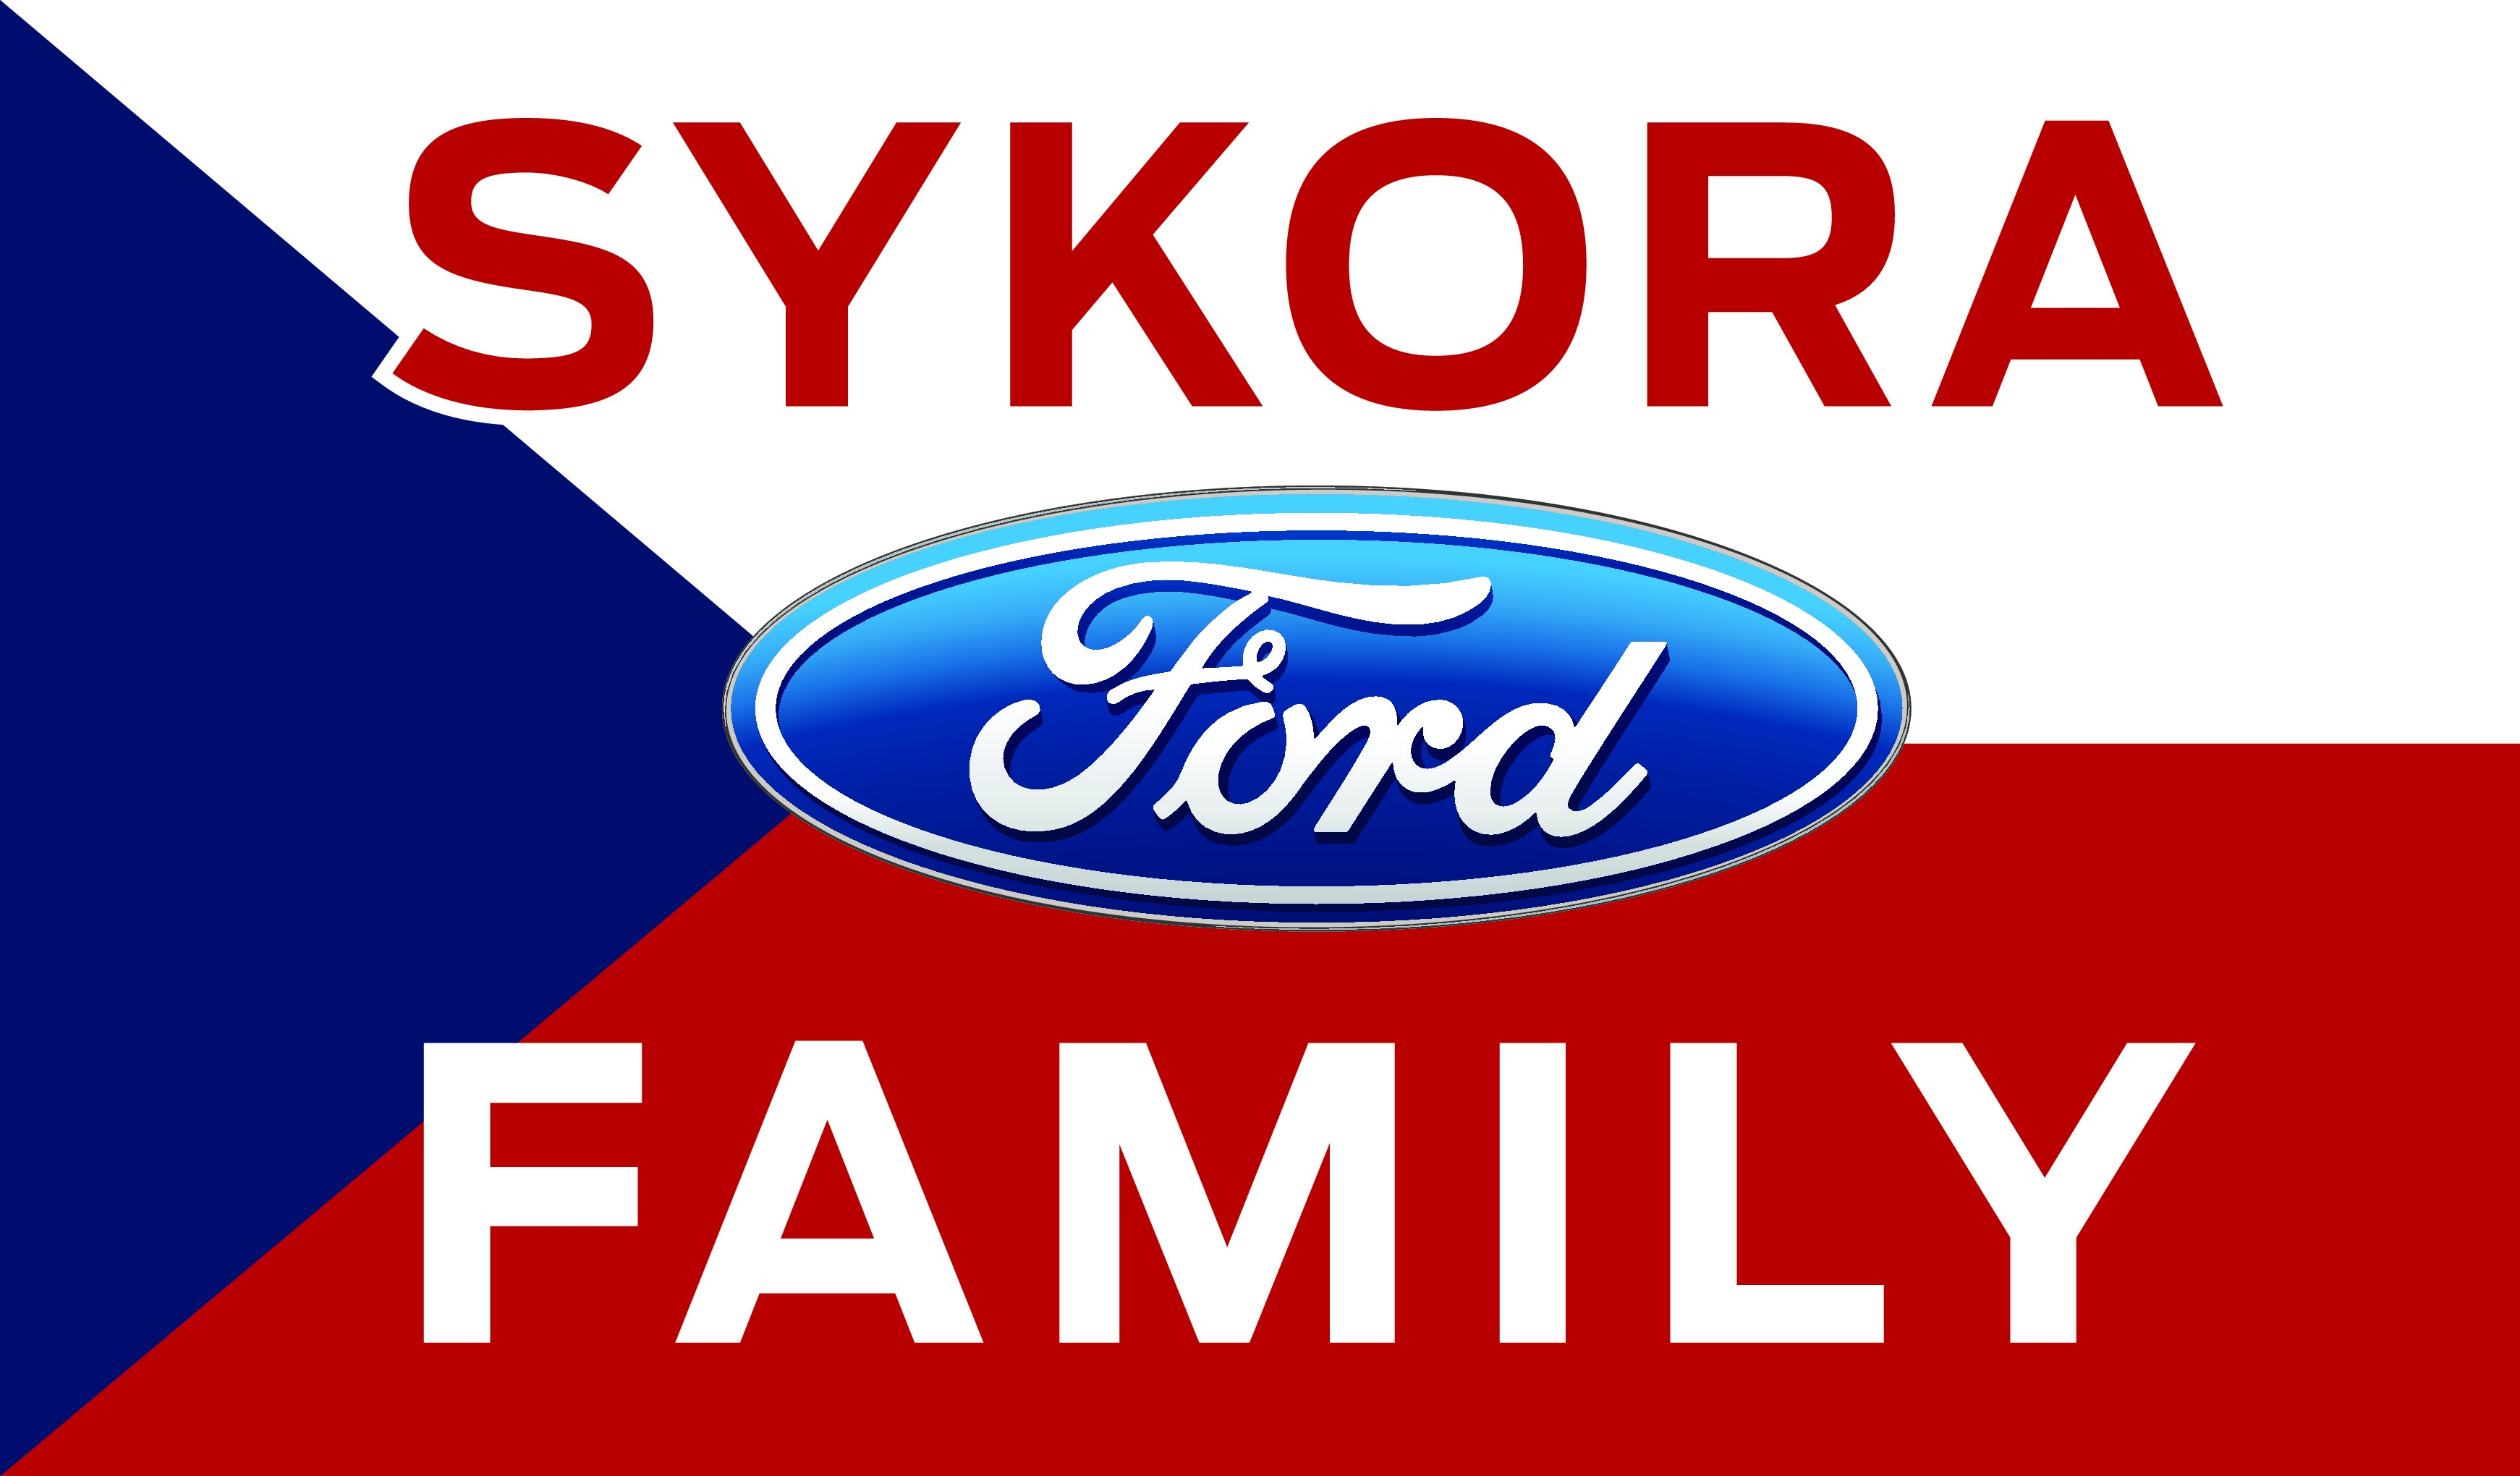 Skykora Family Ford Logo